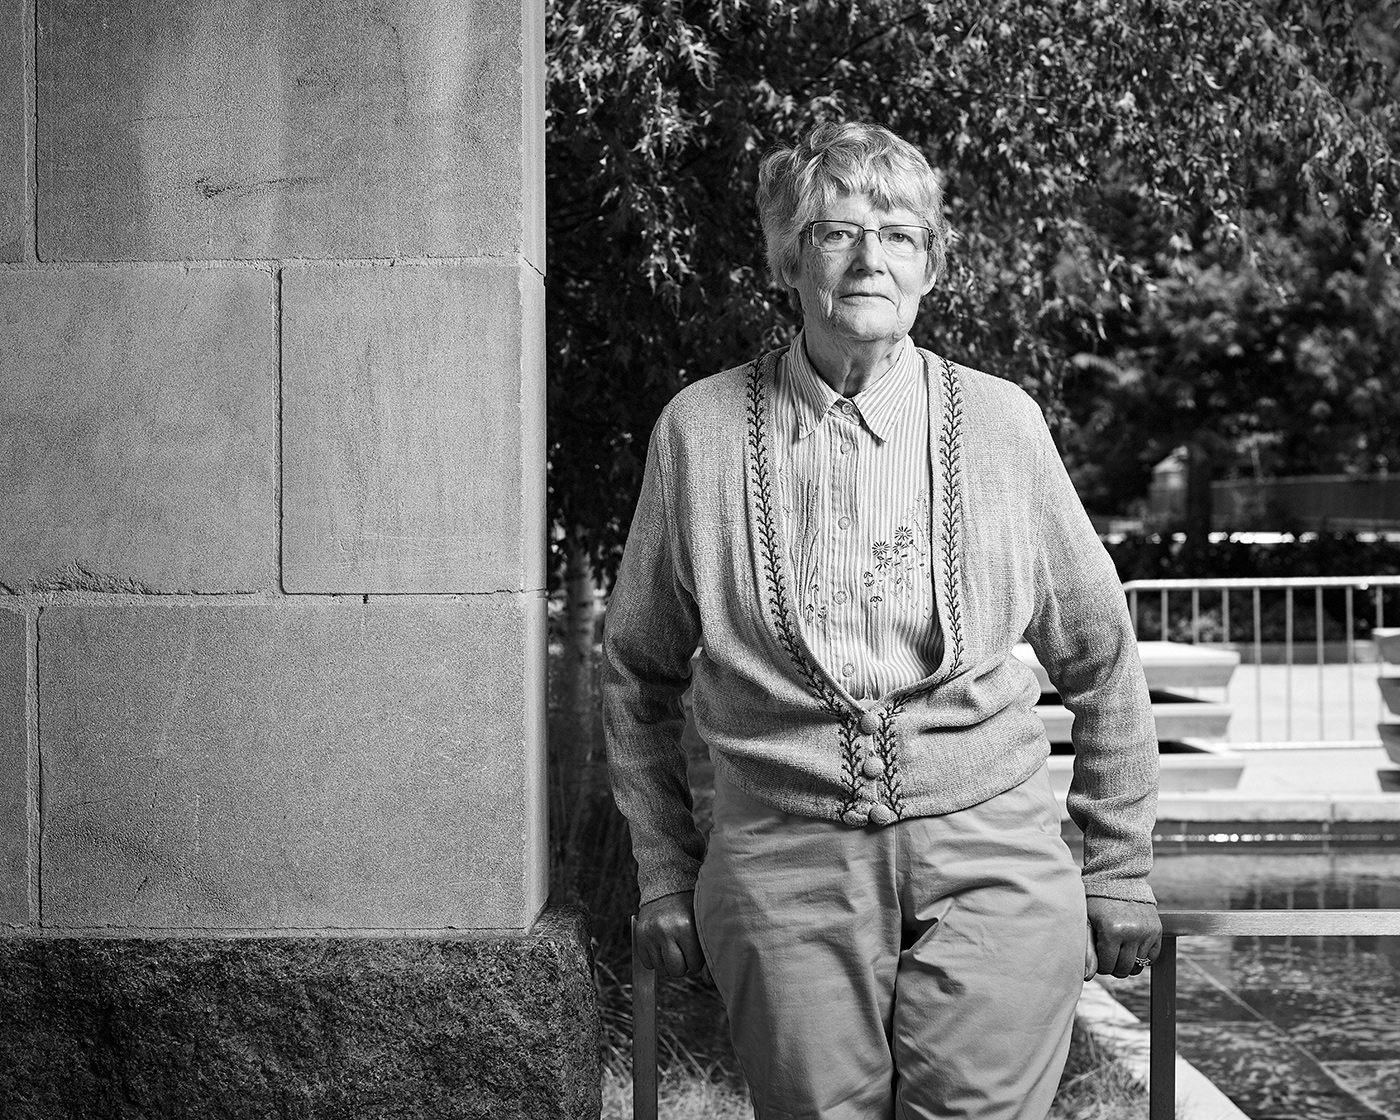 Portrait of Barbara Birkett standing in the Peace Garden at Nathan Phillips Square in Toronto.